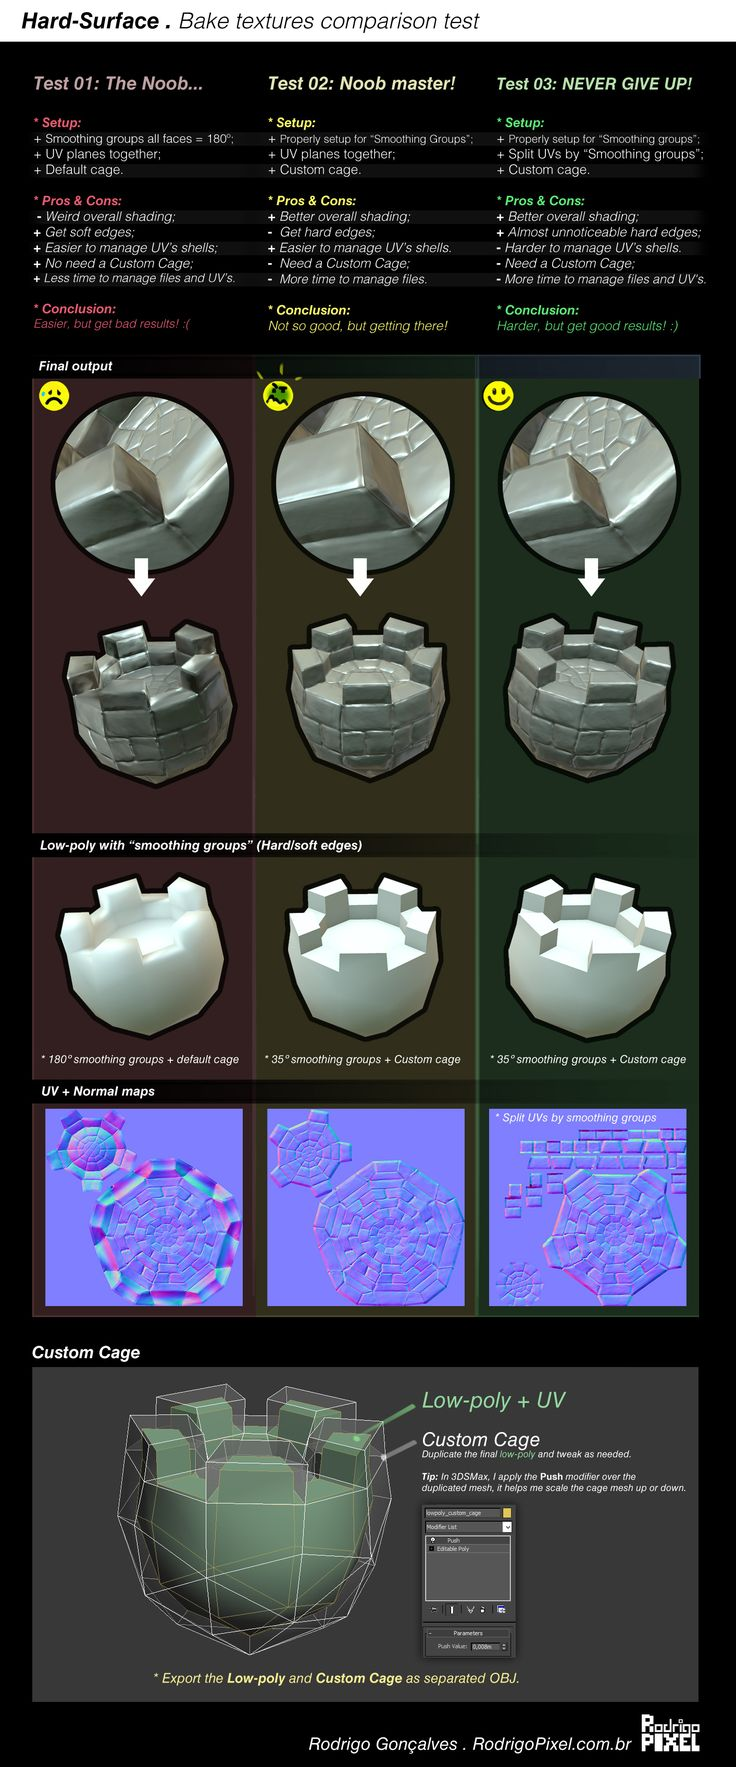 hardsurface_bake_test.jpg (1413×3393)